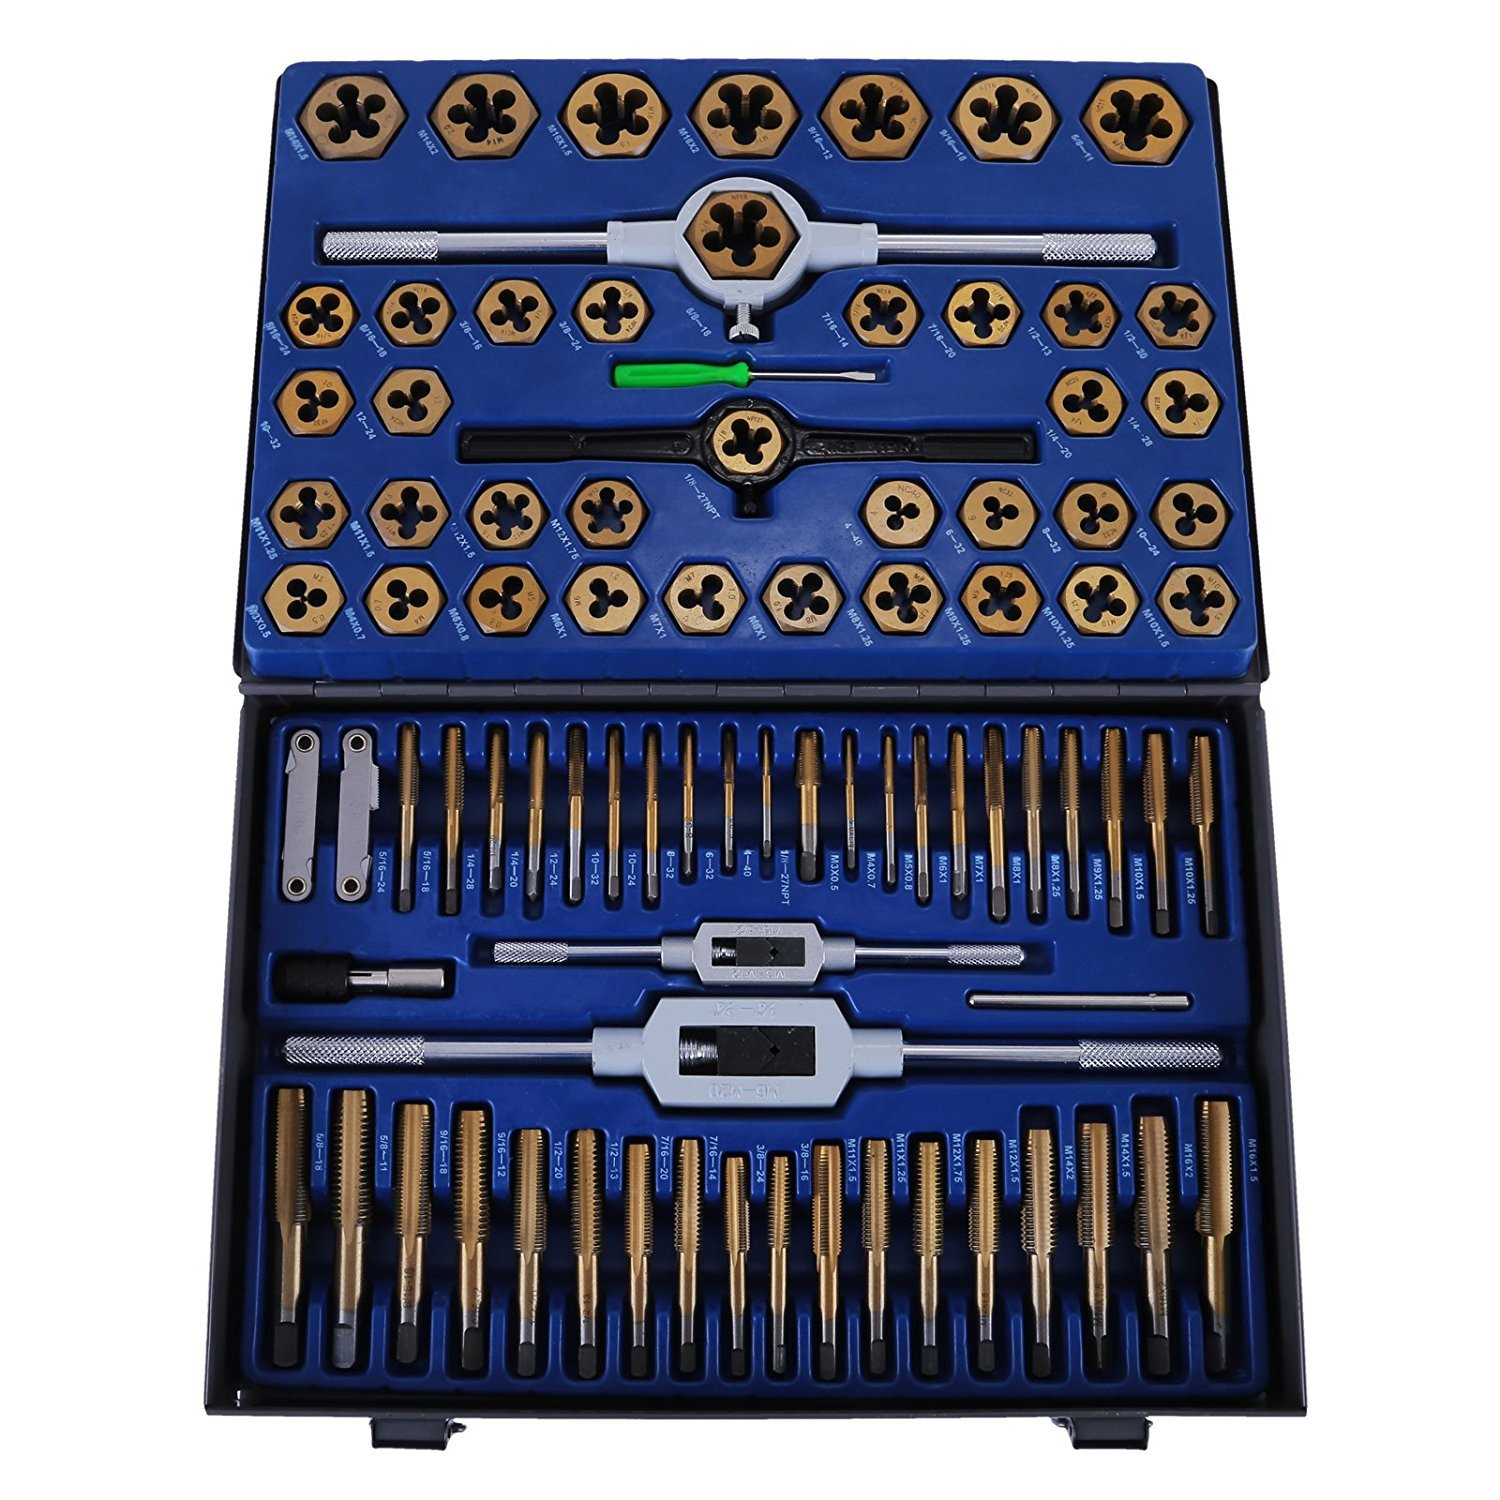 BestEquip Tap and Die Set 86 Piece Metric Tap and Die Set Tungsten Steel Titanium Sae and Metric Tools with Carrying Case (86 Piece)